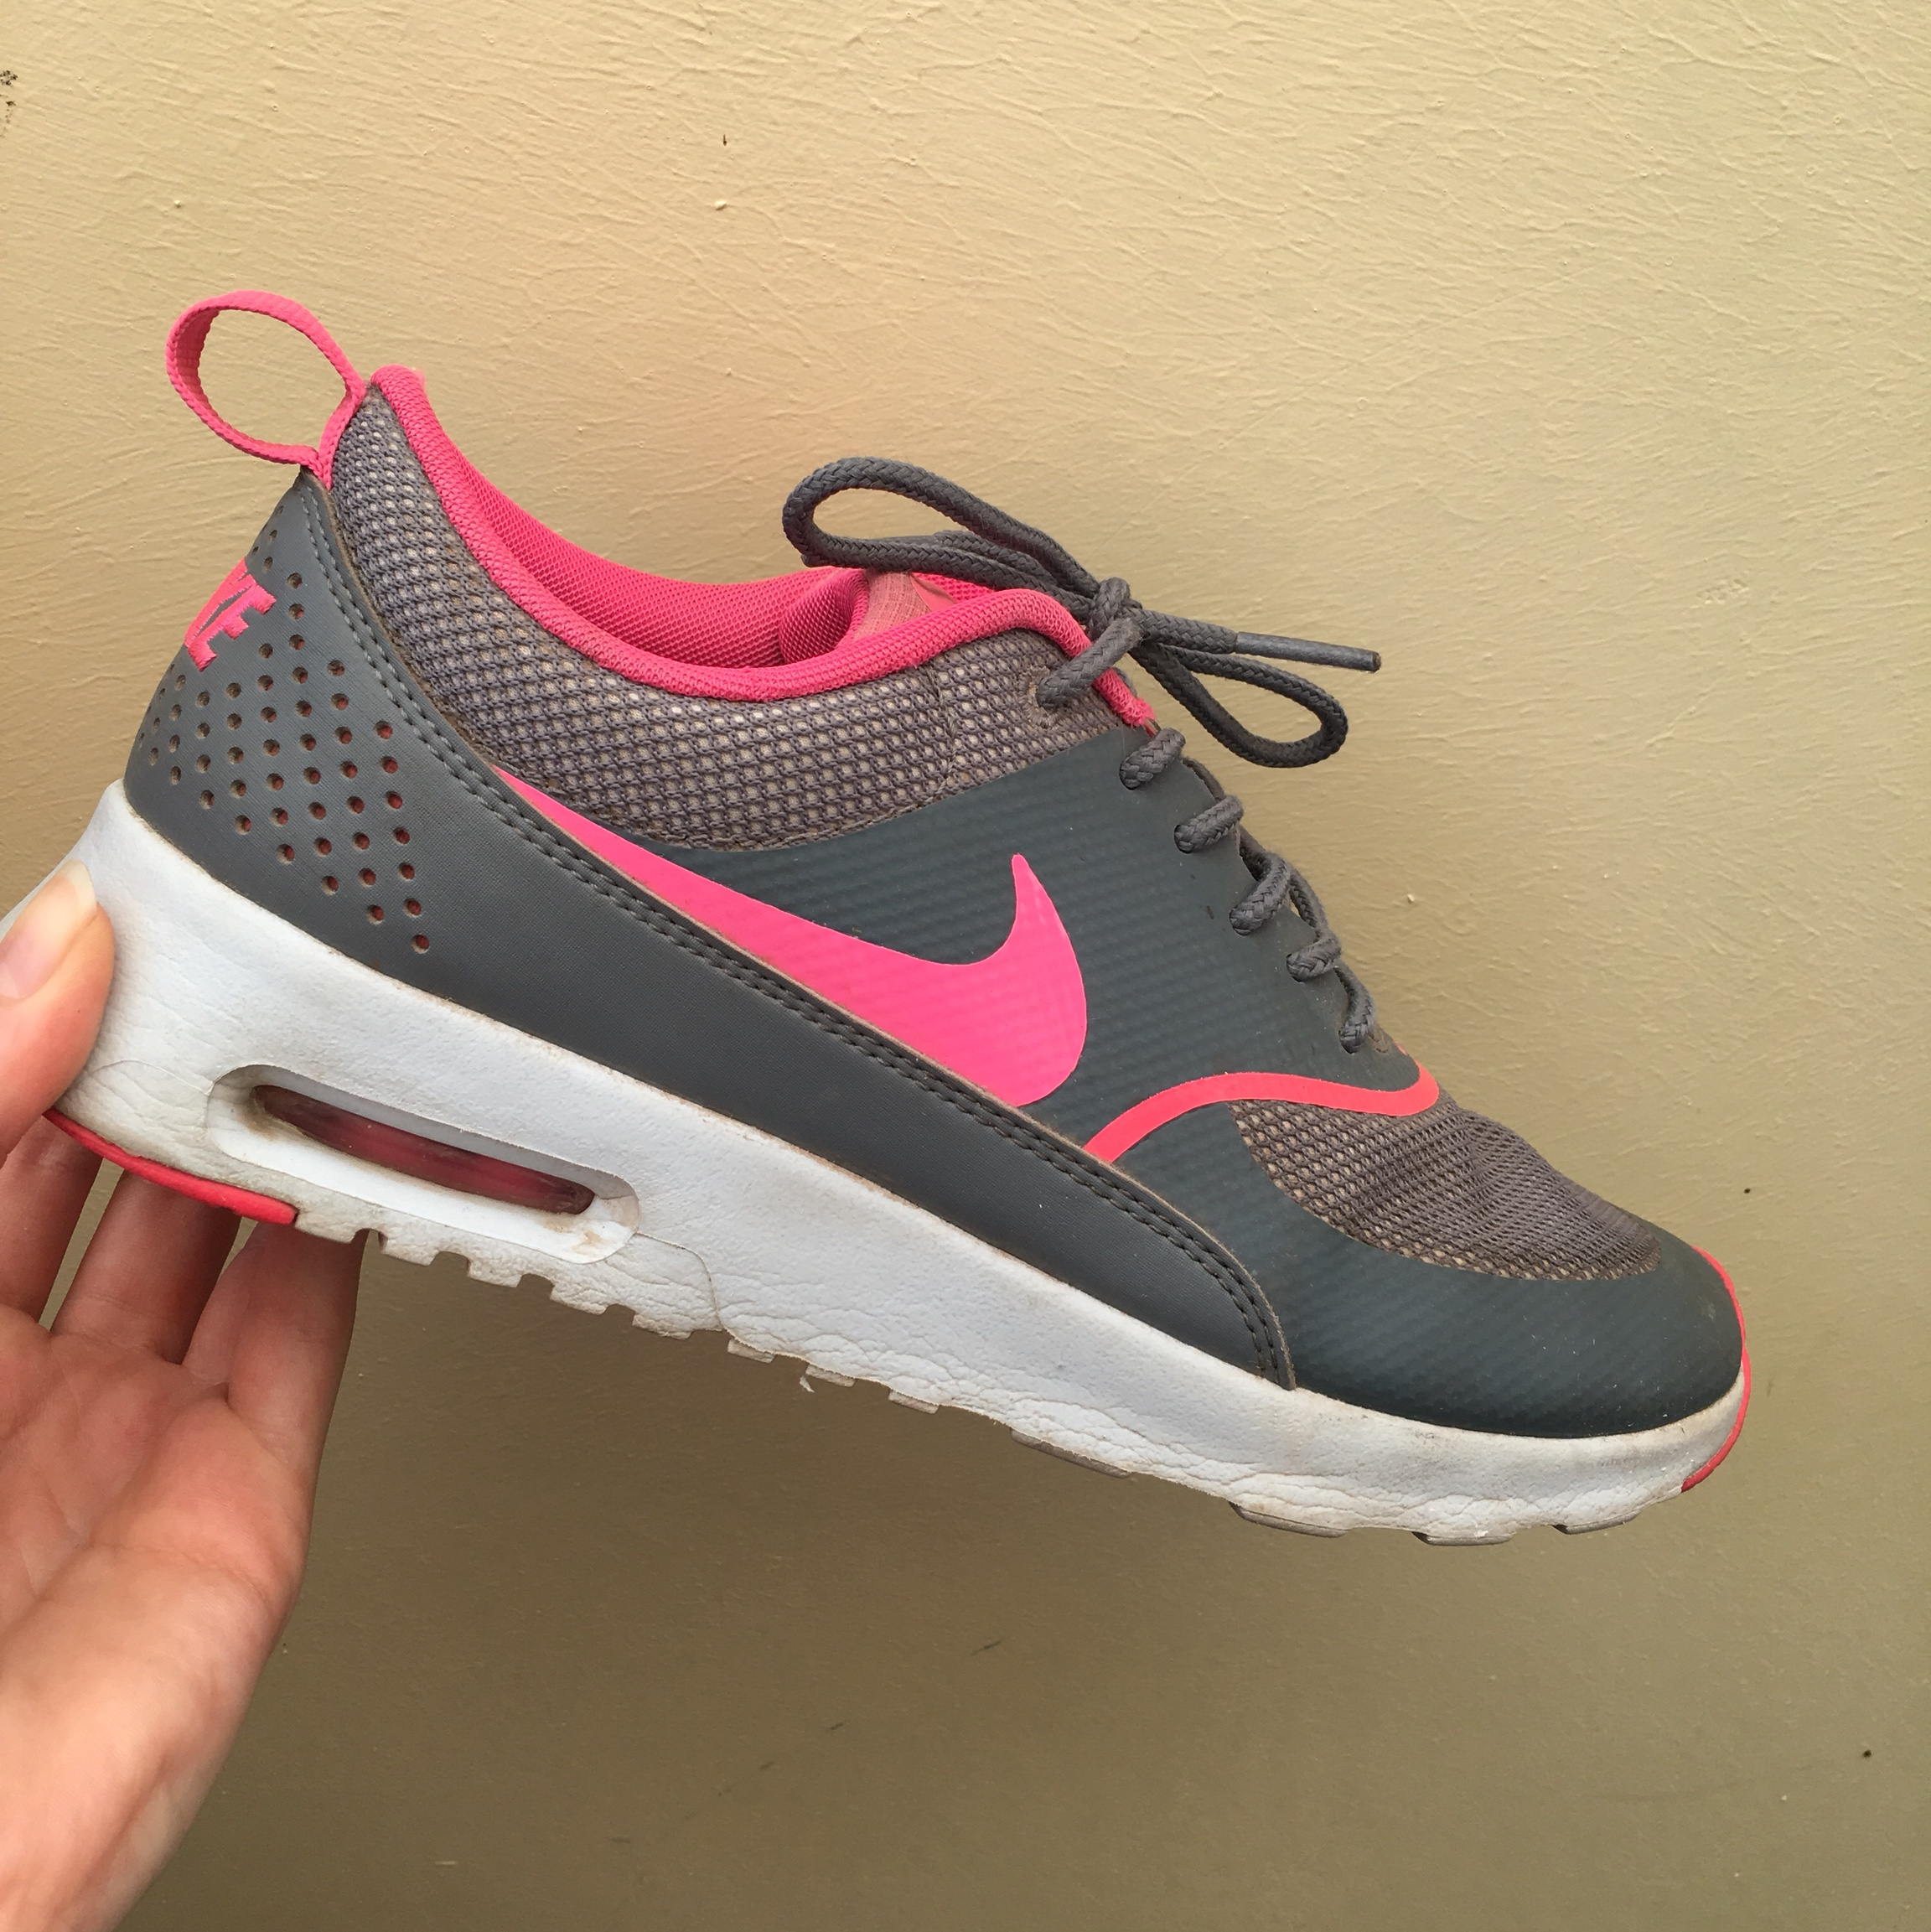 Humano Manuscrito niebla tóxica  Nike Air Max Thea -grey/pink -been worn a few times... - Depop